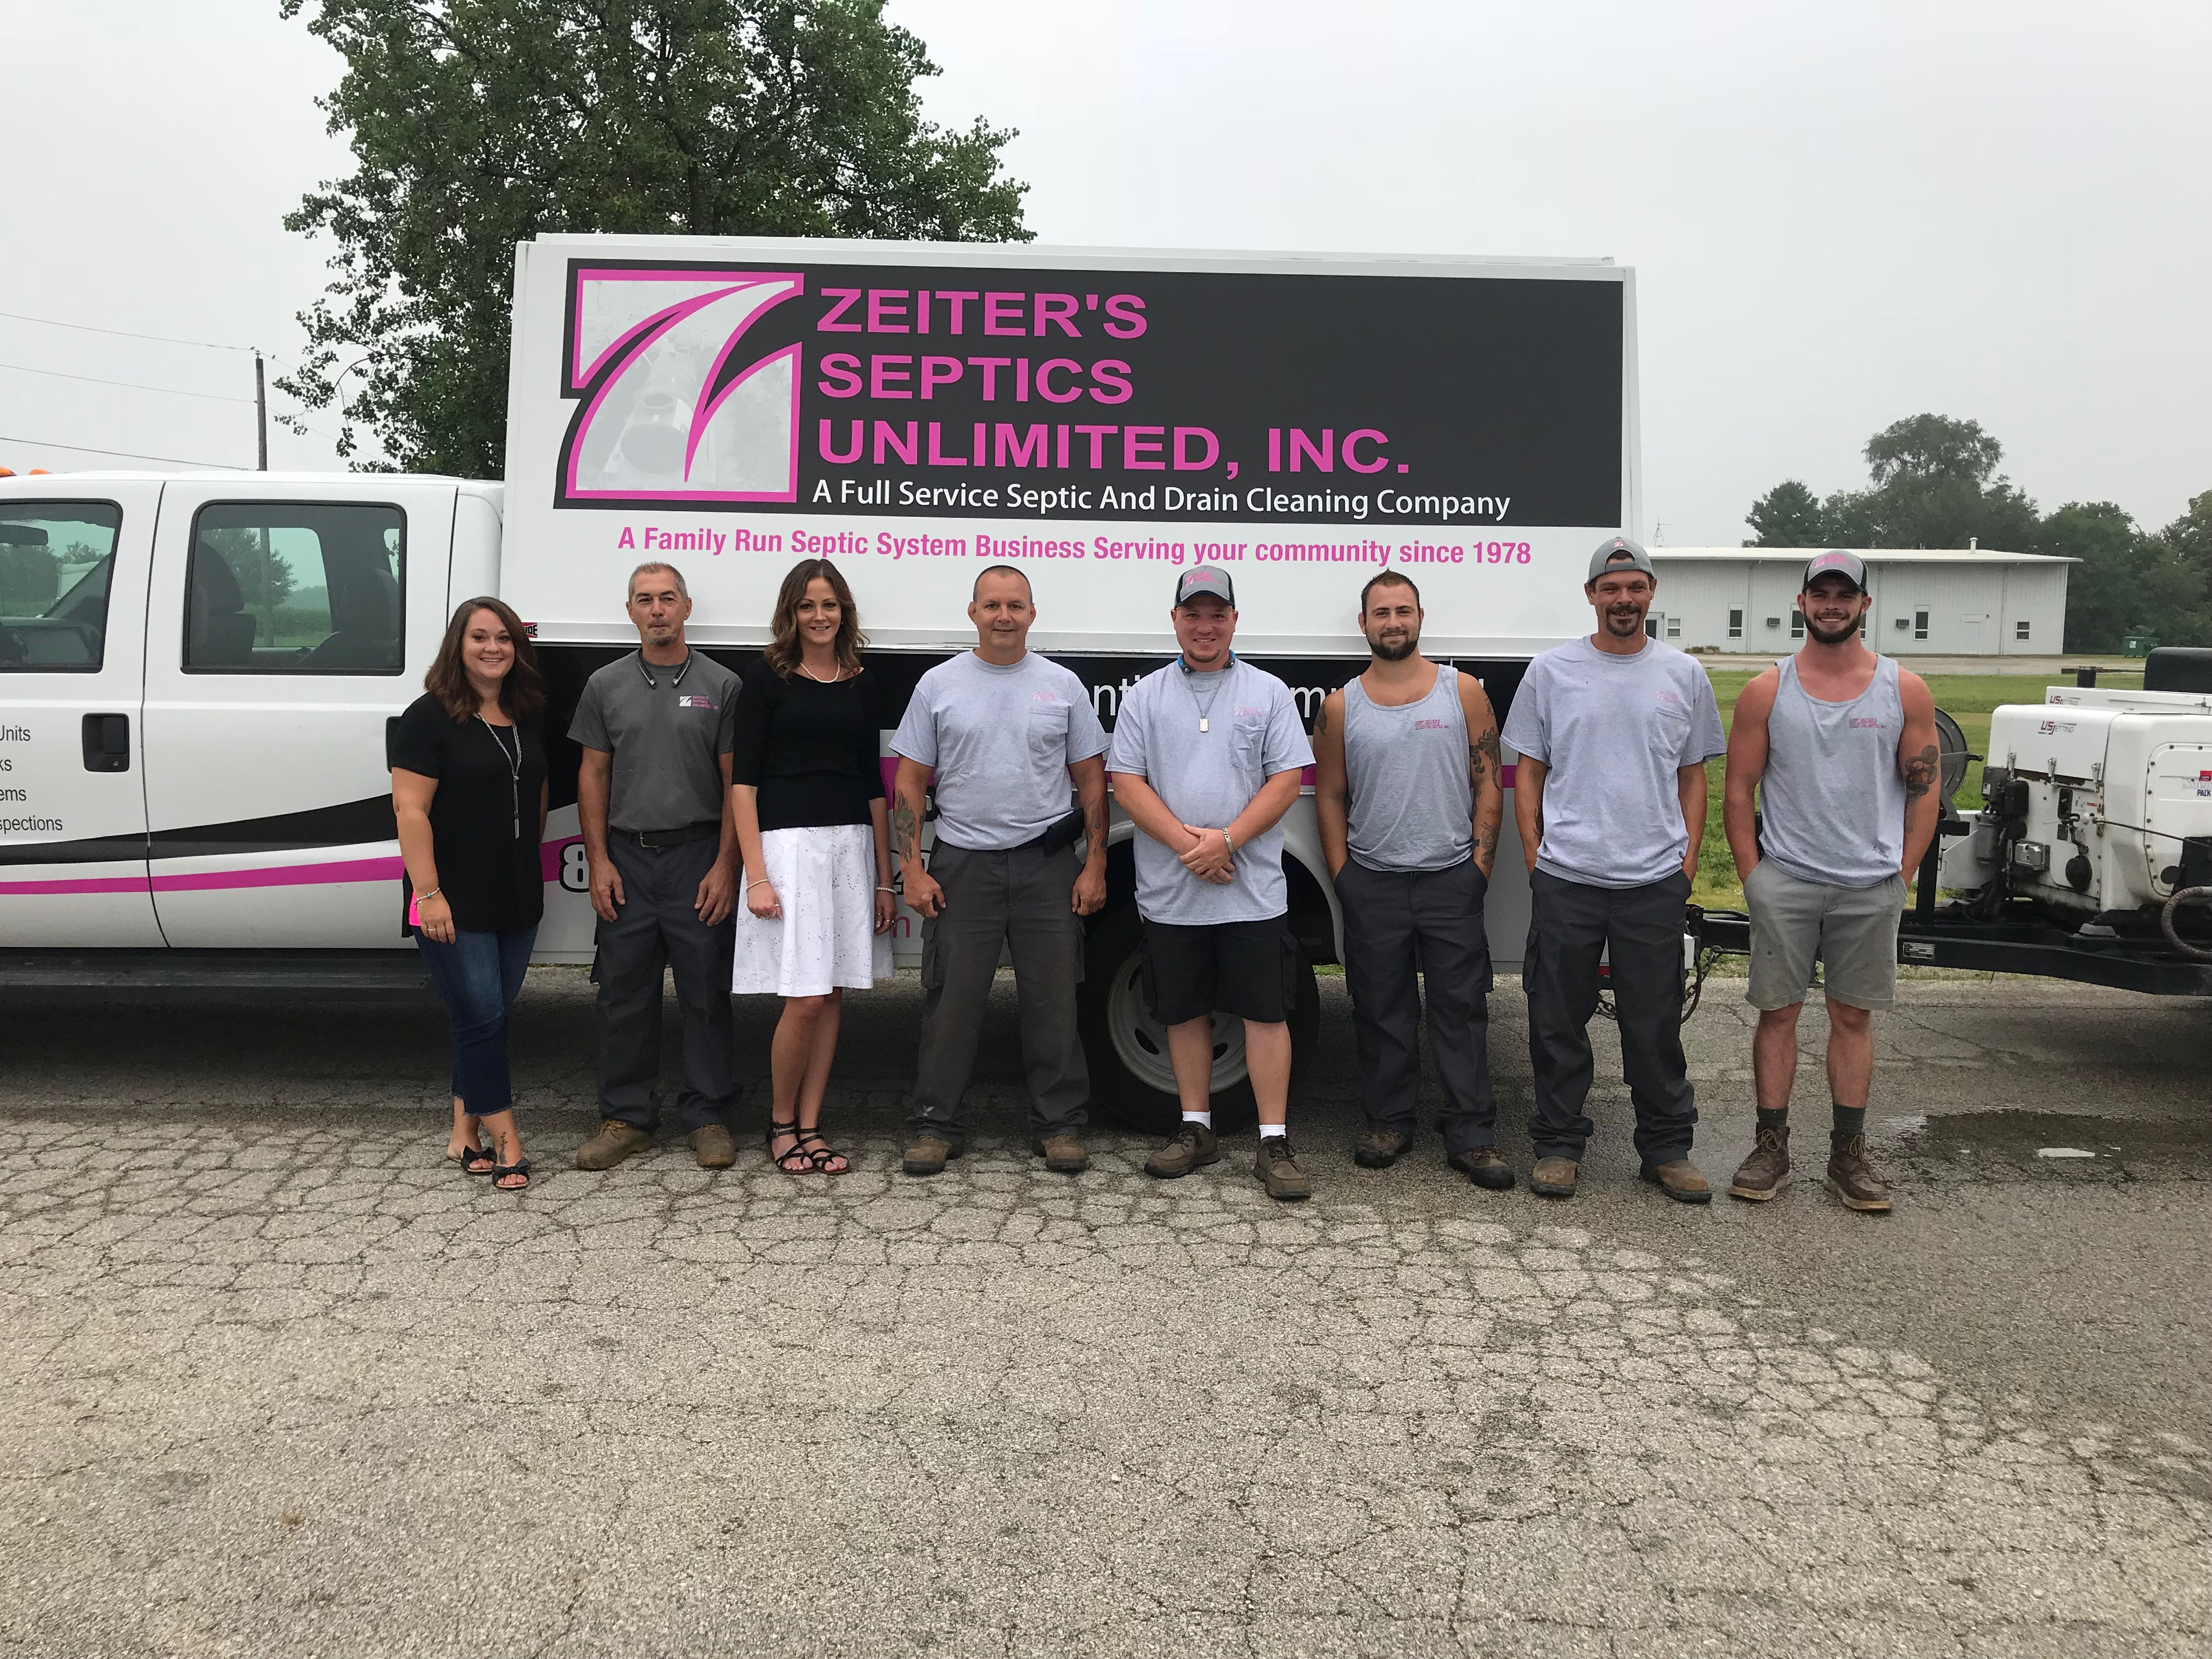 Septic Systems ☆ Zeiter's Septics Unlimited Inc